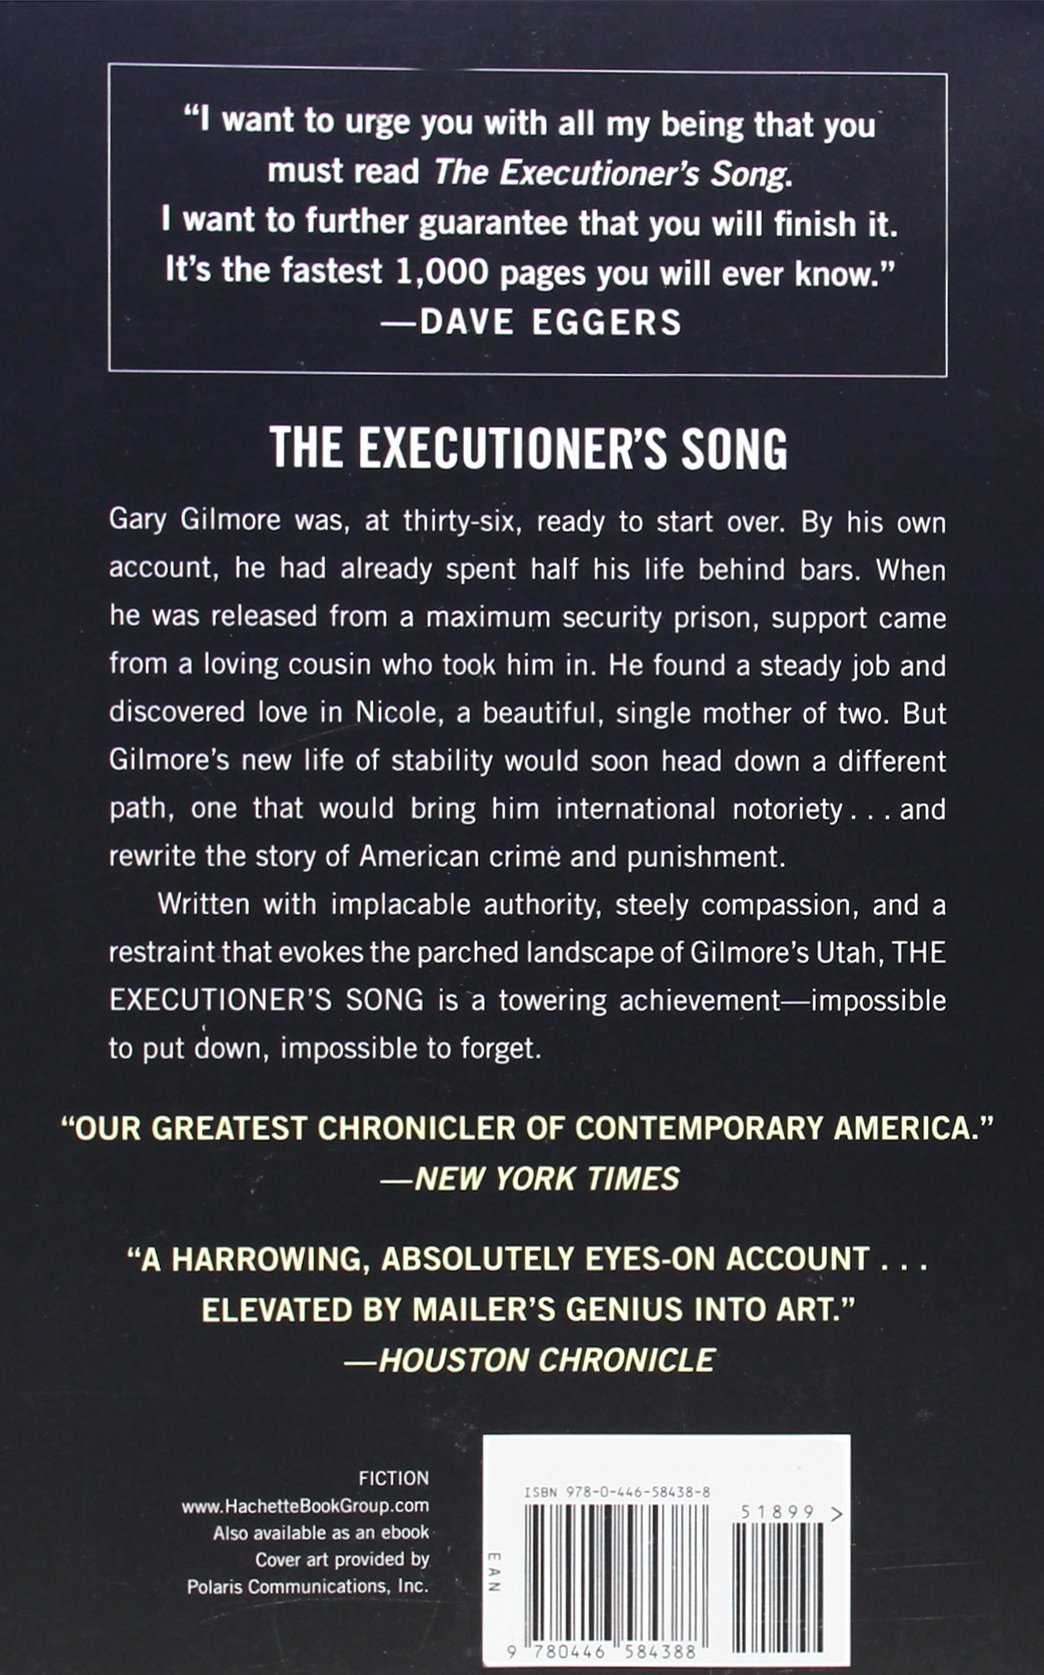 the executioner s song mailer norman eggers dave